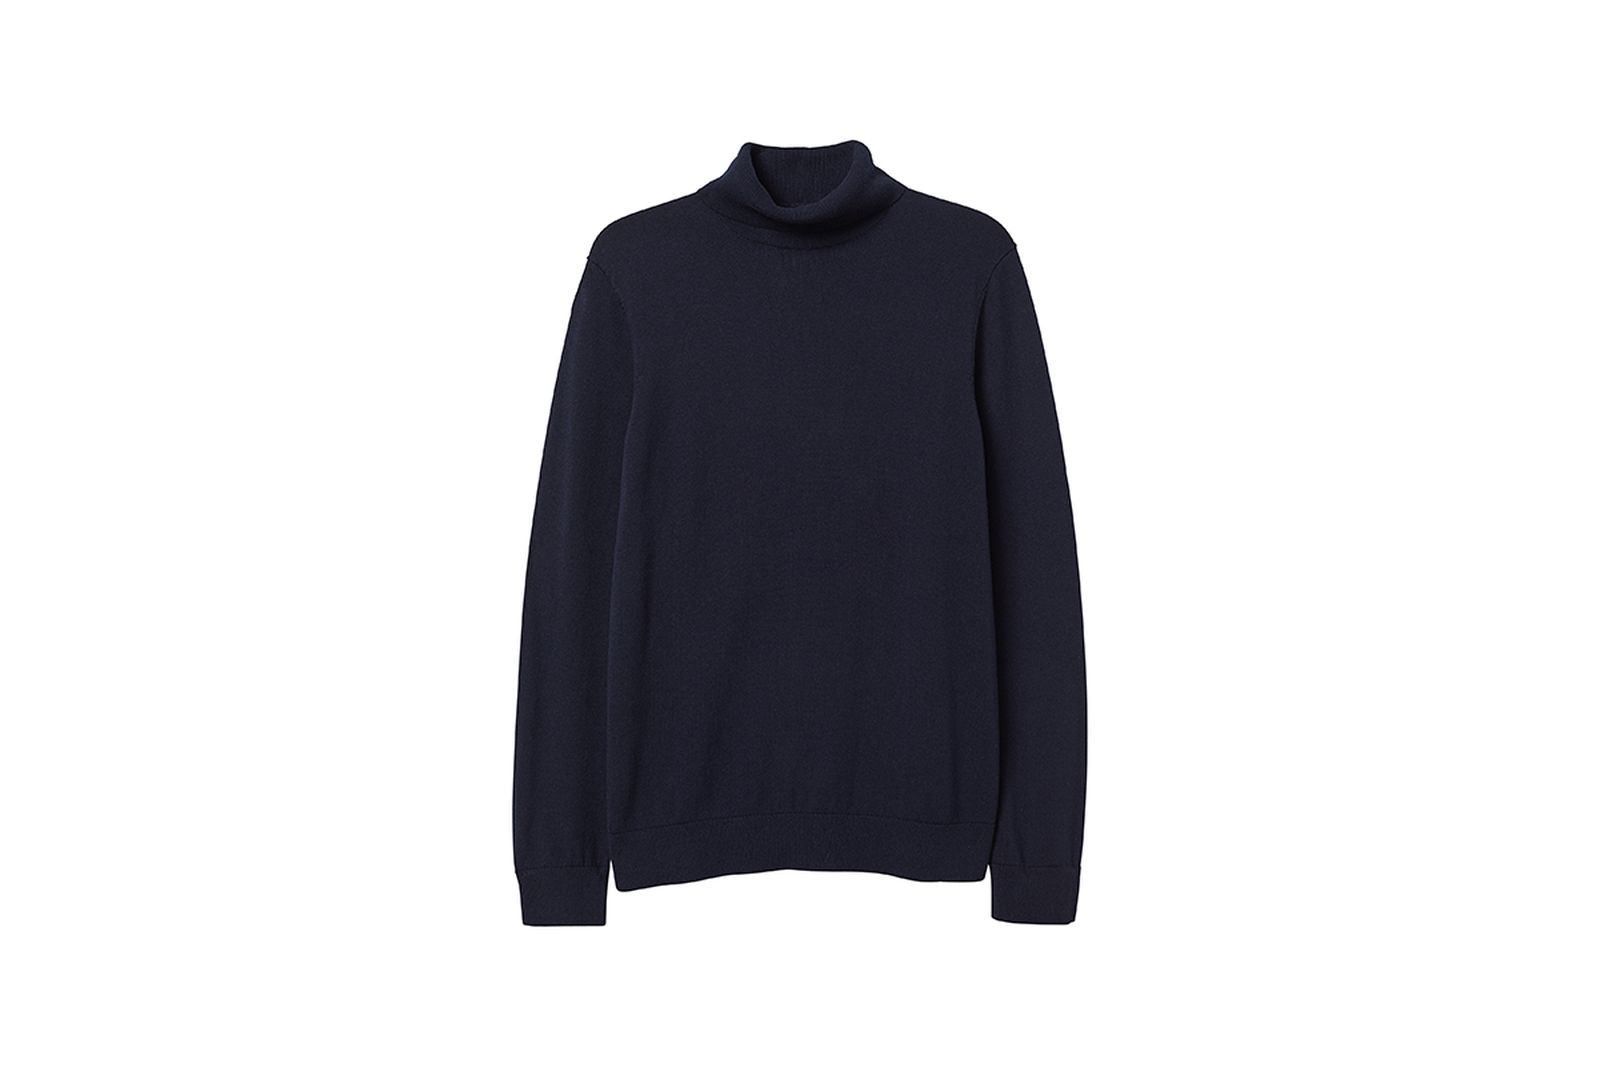 HM Knit Turtleneck Sweater Gift Guide h&m holiday